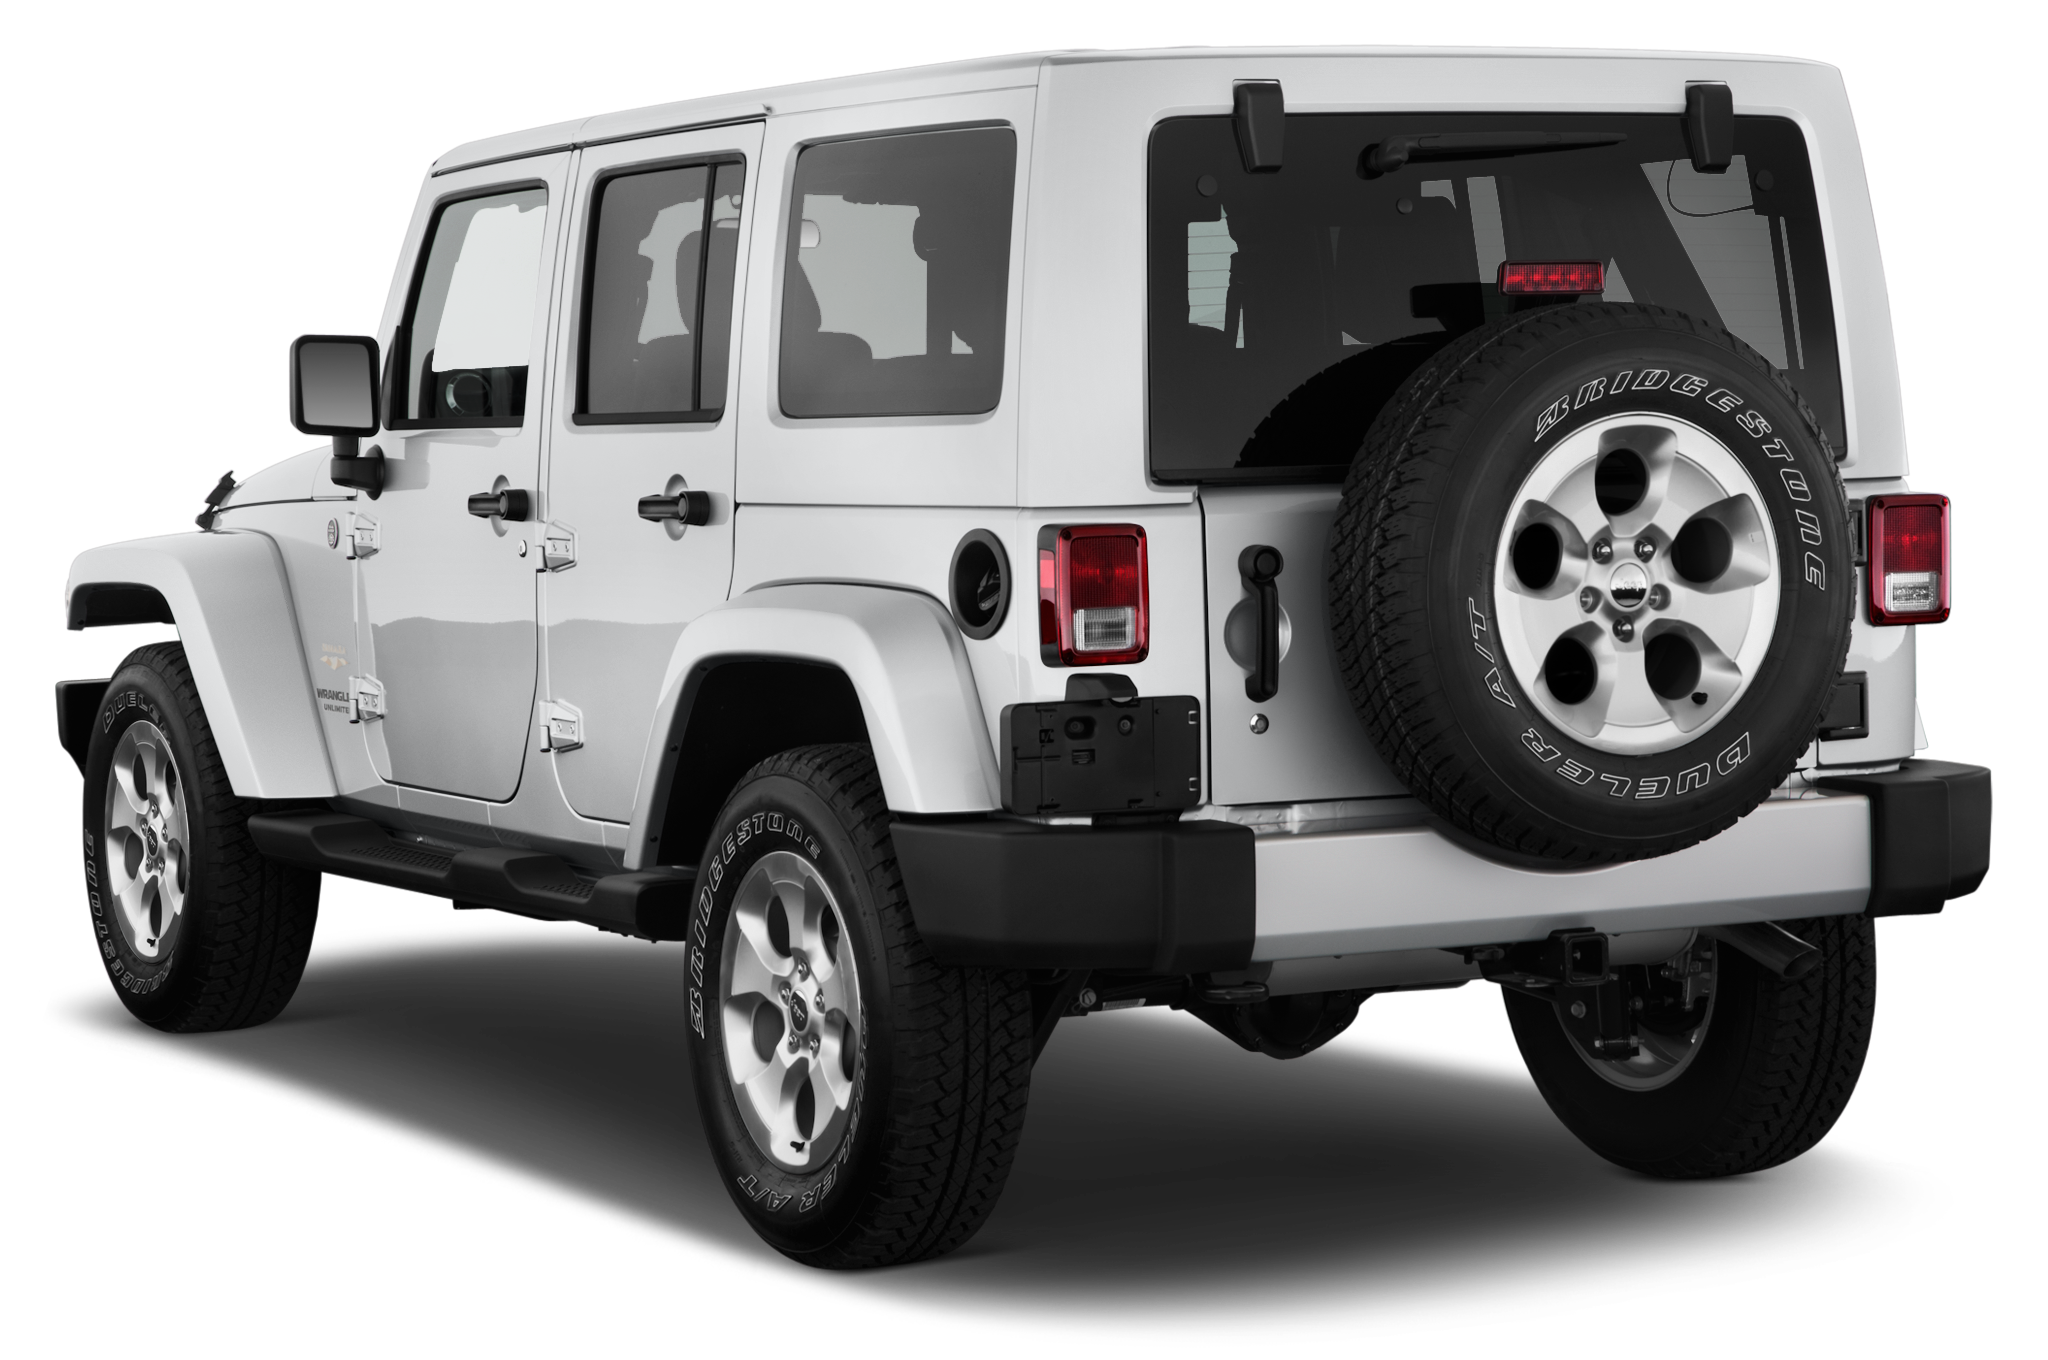 jeep wrangler unlimited reviews and rating motor #22796